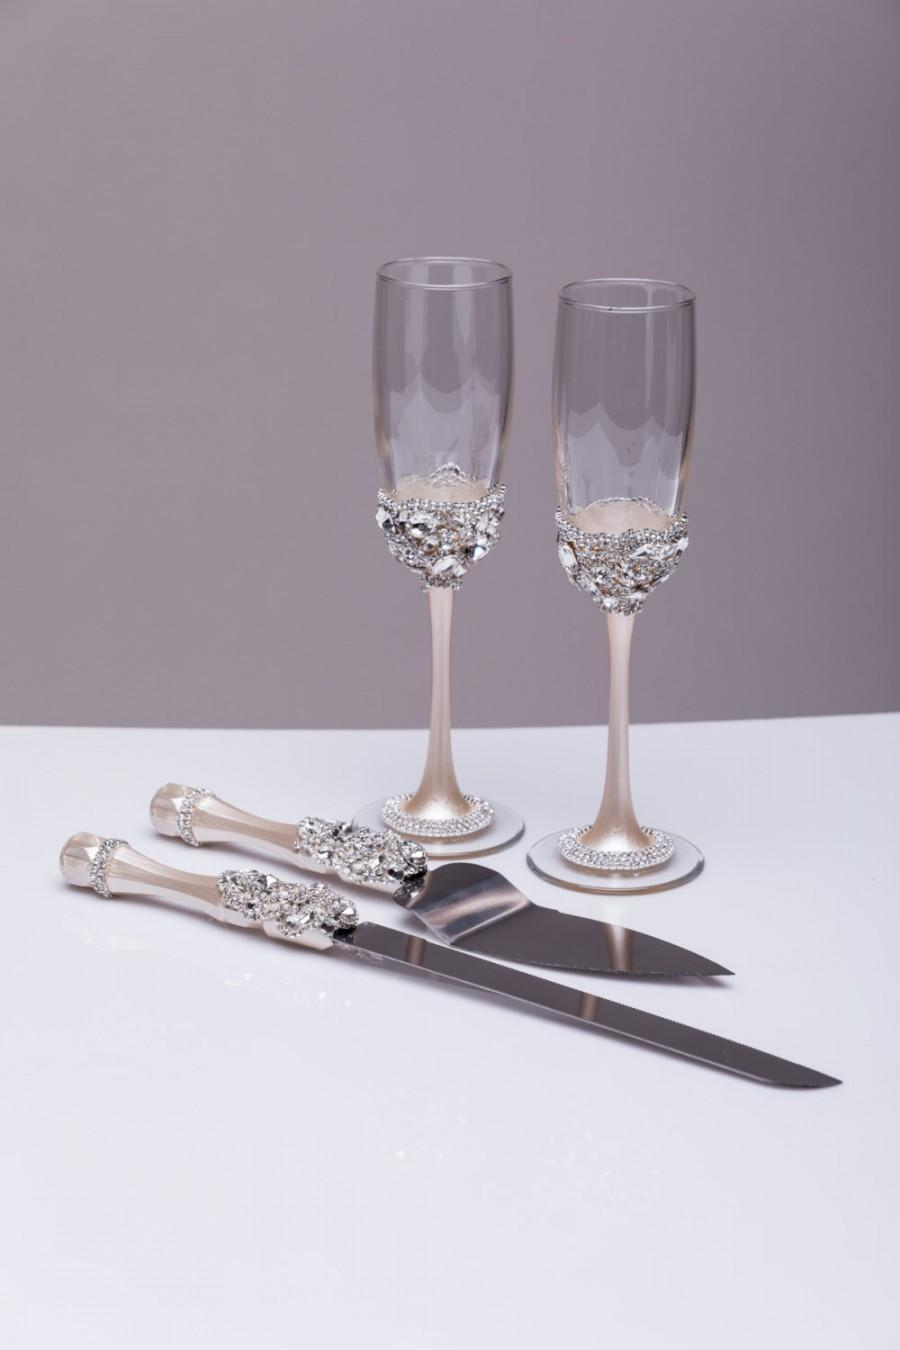 Wedding Silver Gles And Cake Server Set Knife Bride Groom Toasting Flutes Champagne Of 4